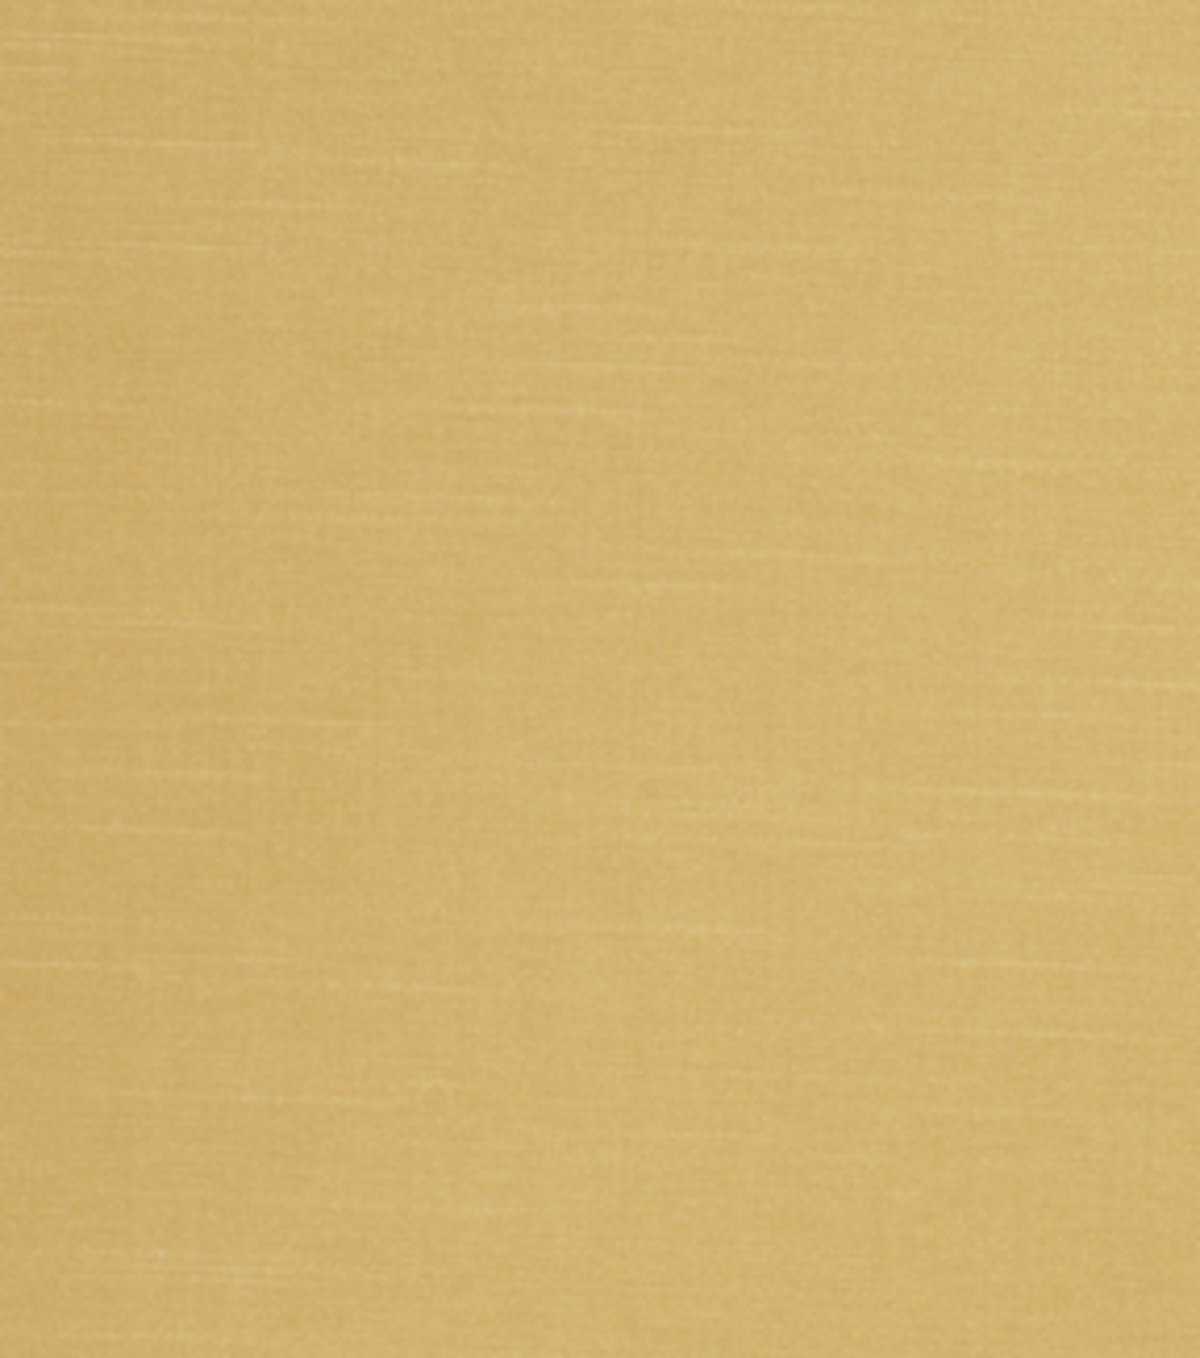 Home Decor 8\u0022x8\u0022 Fabric Swatch-Richloom Studio Silky Amber